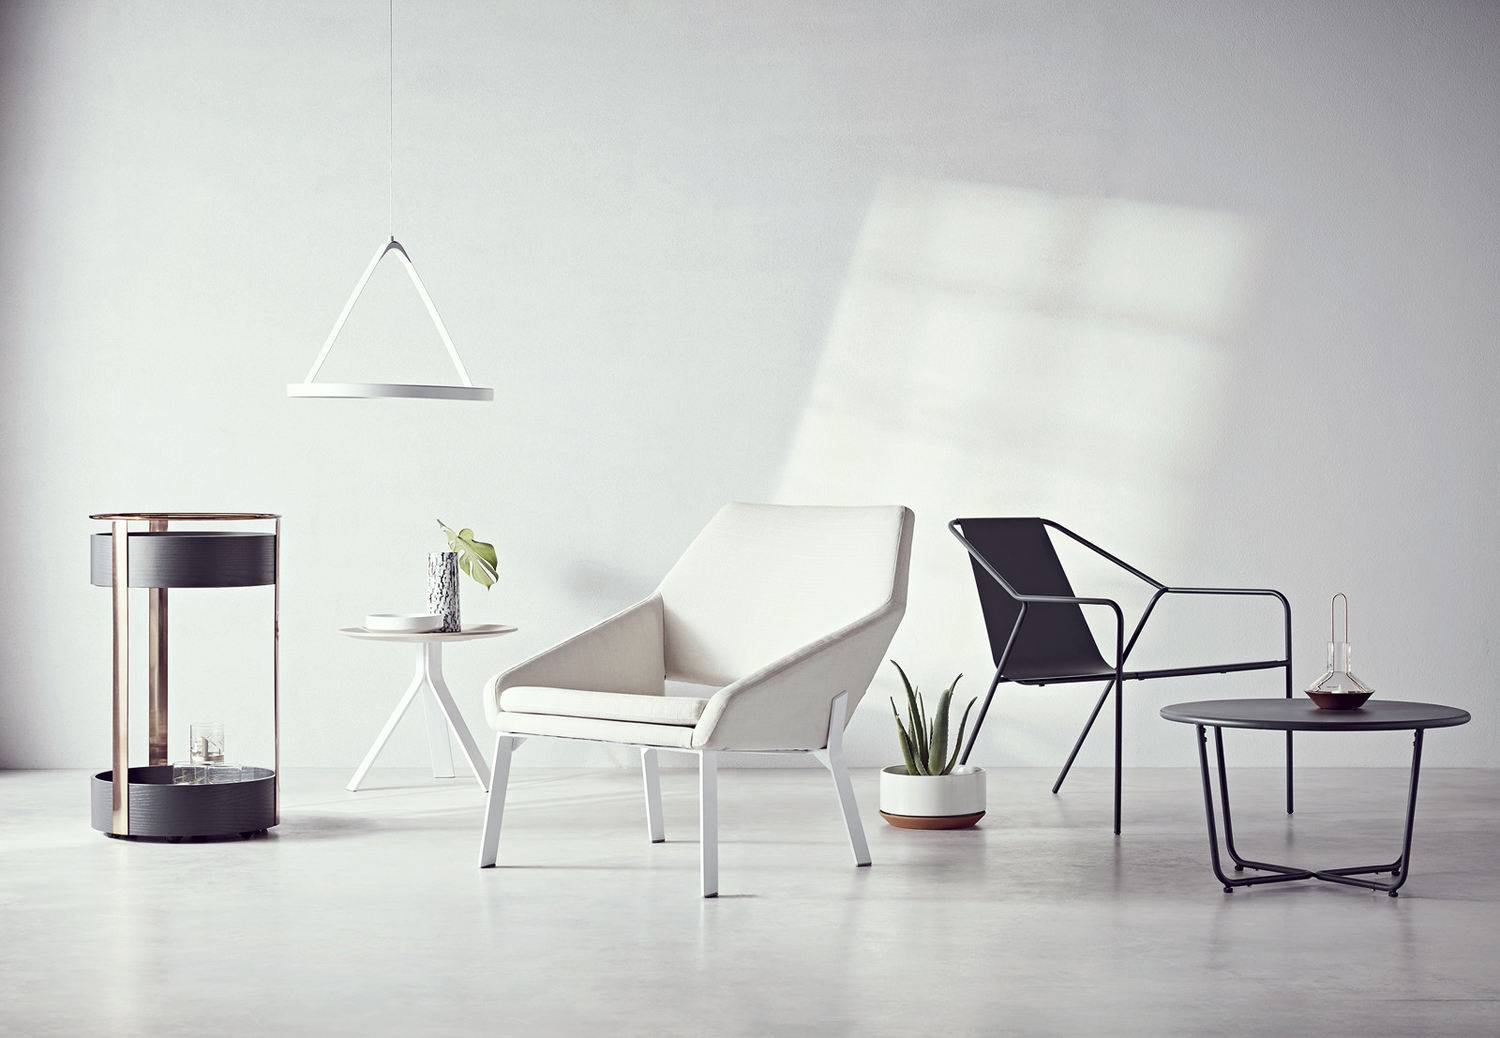 Art direction and product photography by New York studio Collins for product and furniture range Modern by Dwell Magazine, a collaboration with Target.